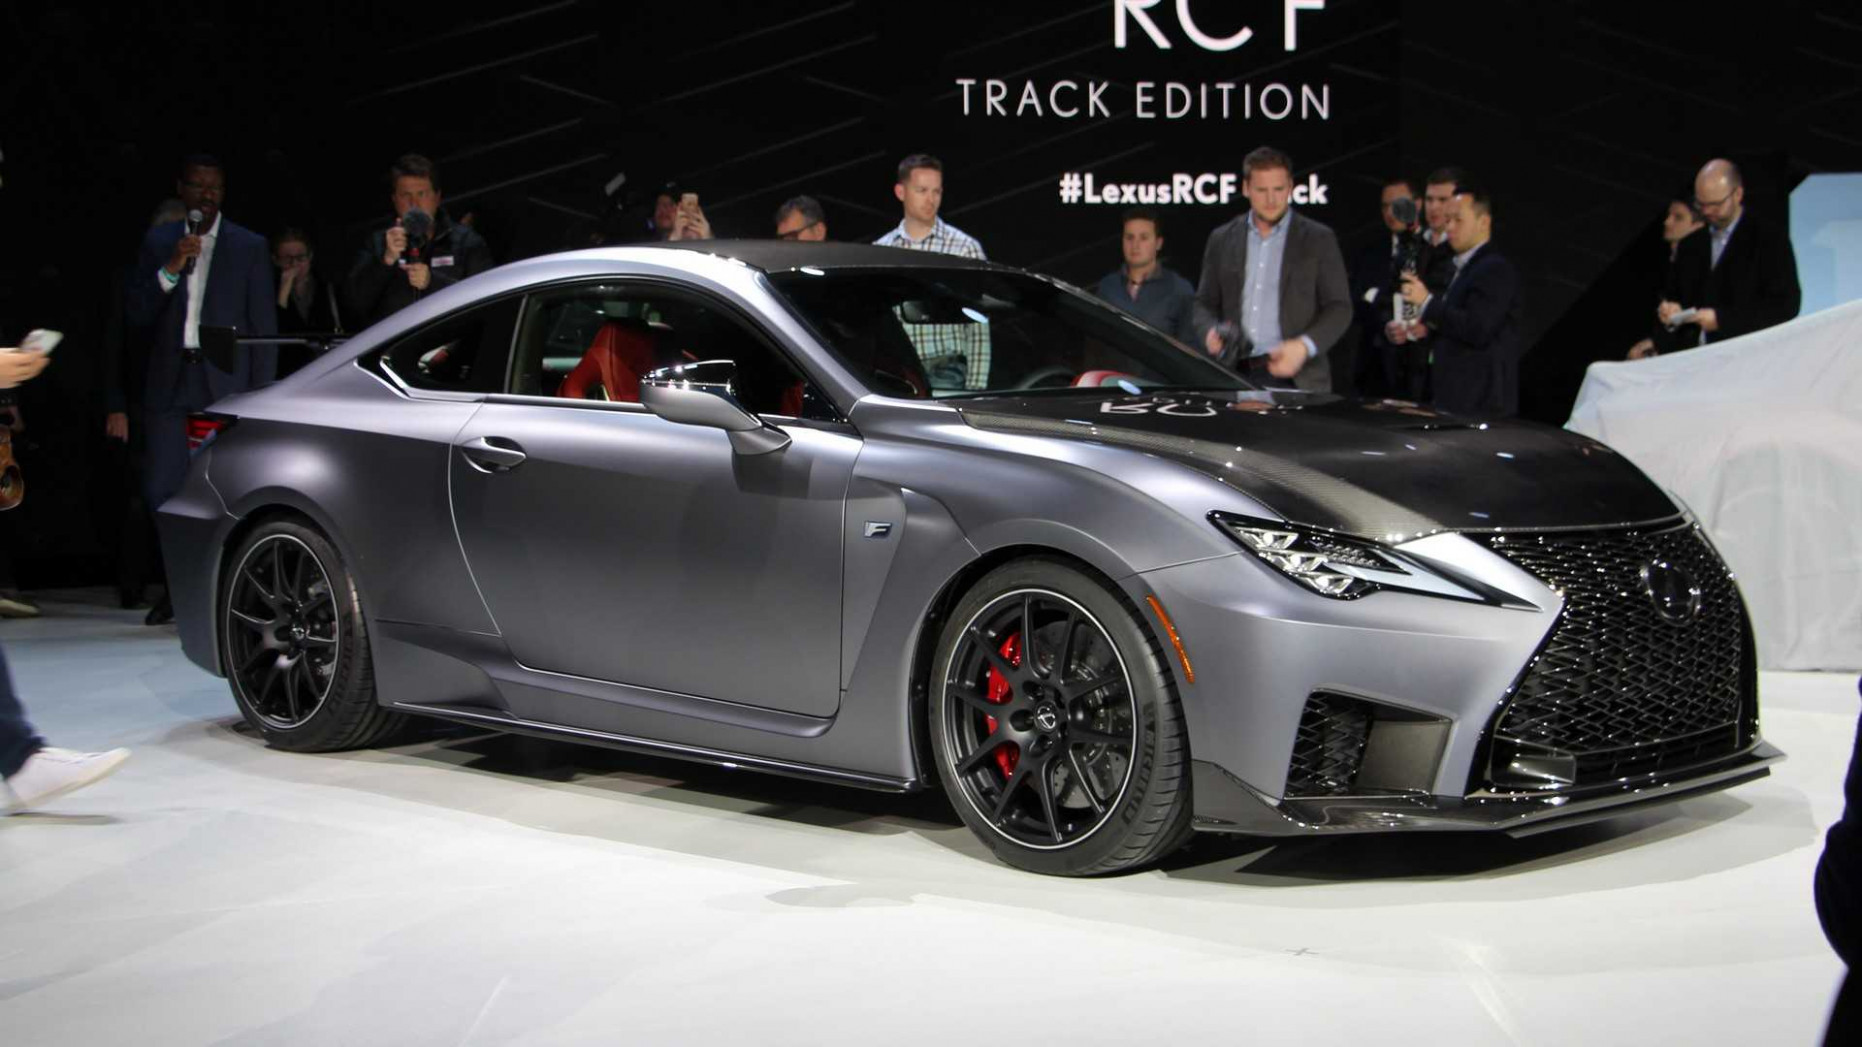 6 Lexus RC F Starts At $6,6, Track Edition Pricier Than LC